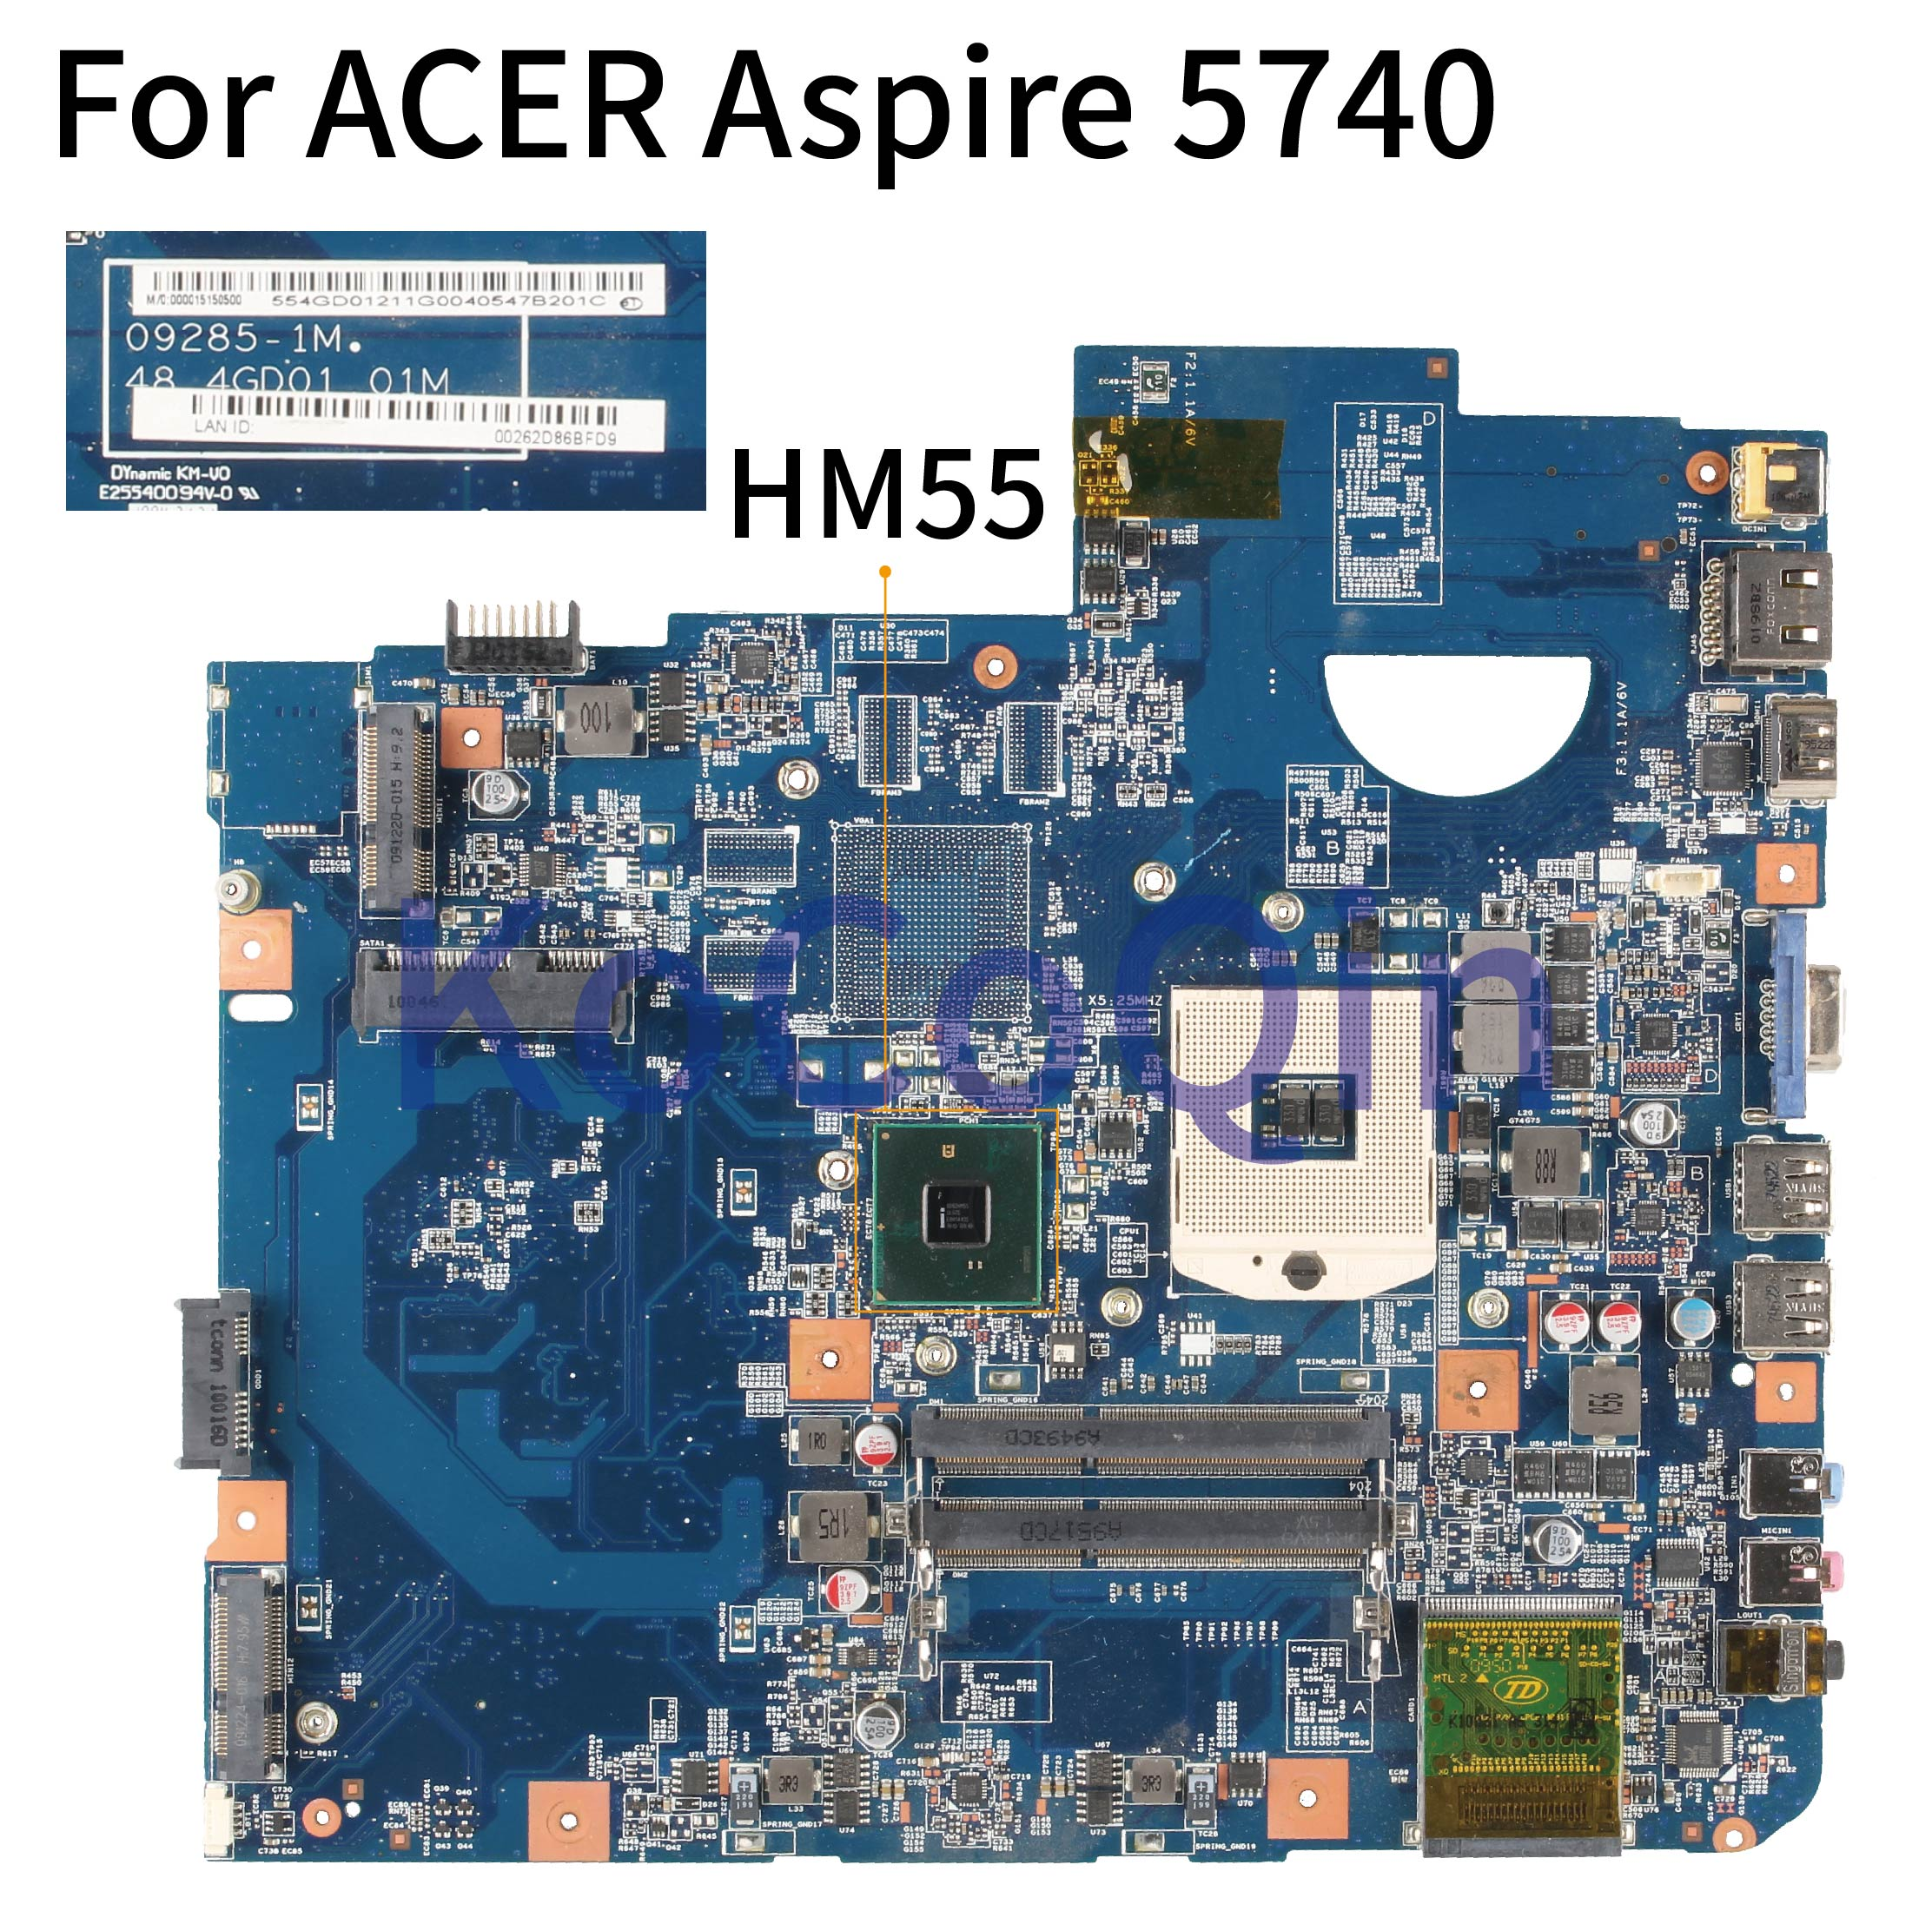 KoCoQin Laptop Motherboard For ACER Aspire 5740 5740G HM55 Mainboard 48.4GD01.01M JV50-CP MB 09285-1M